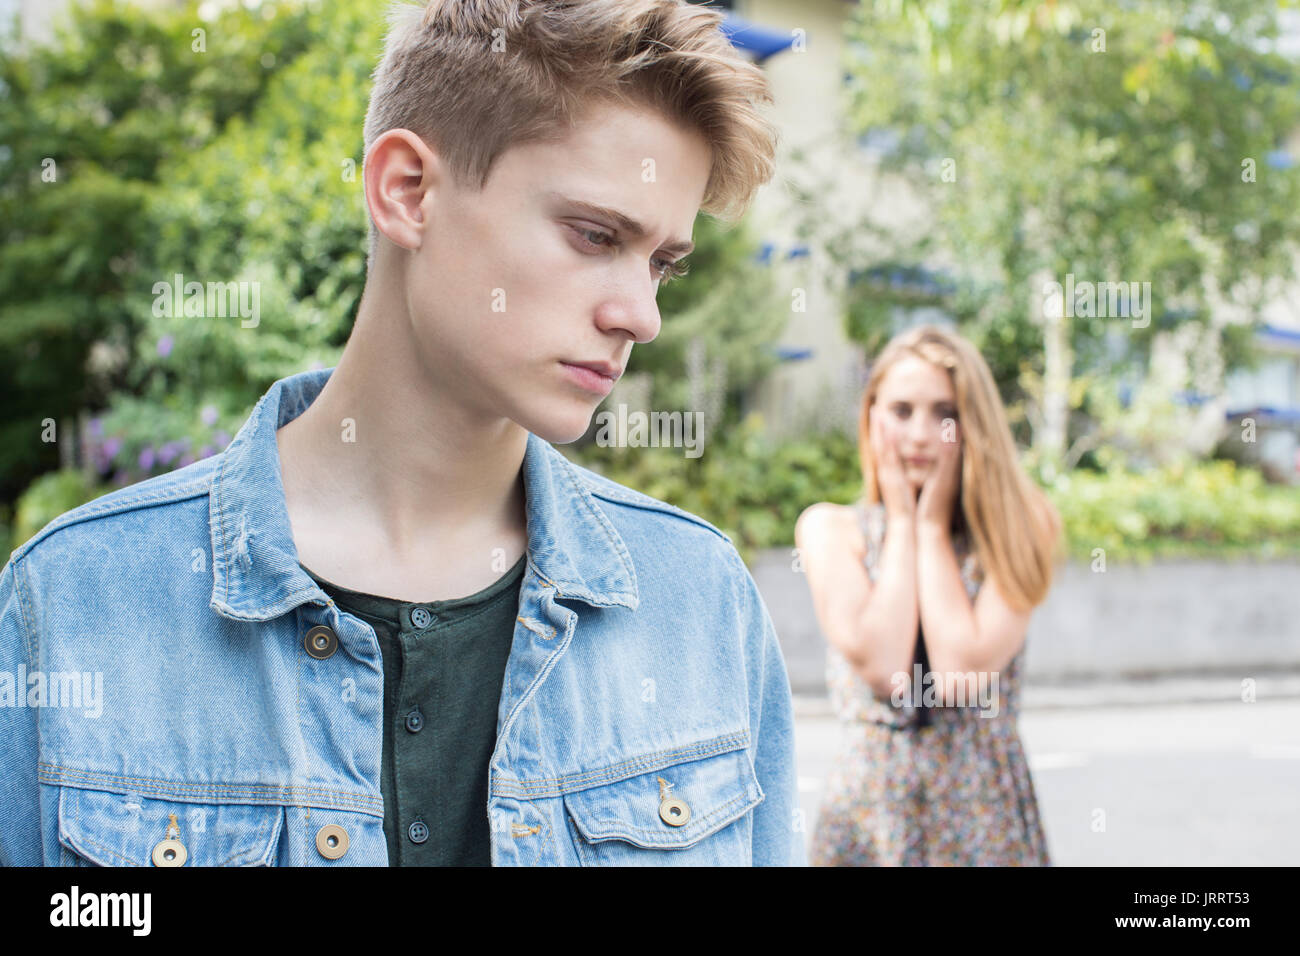 Unhappy Teenage Couple With Relationship Problem In Urban Setting - Stock Image